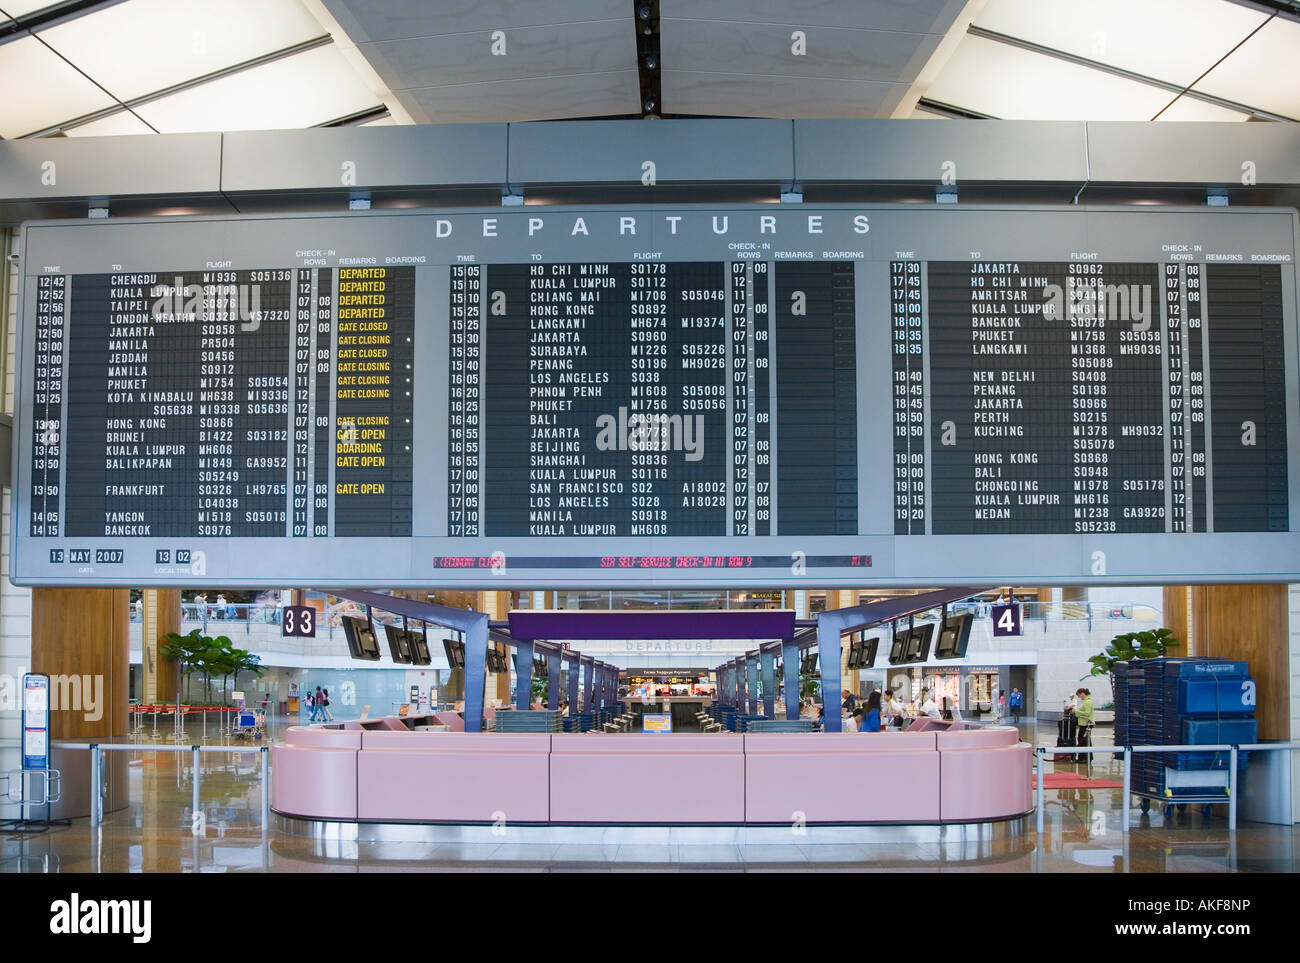 Arrival departure board at an airport - Stock Image